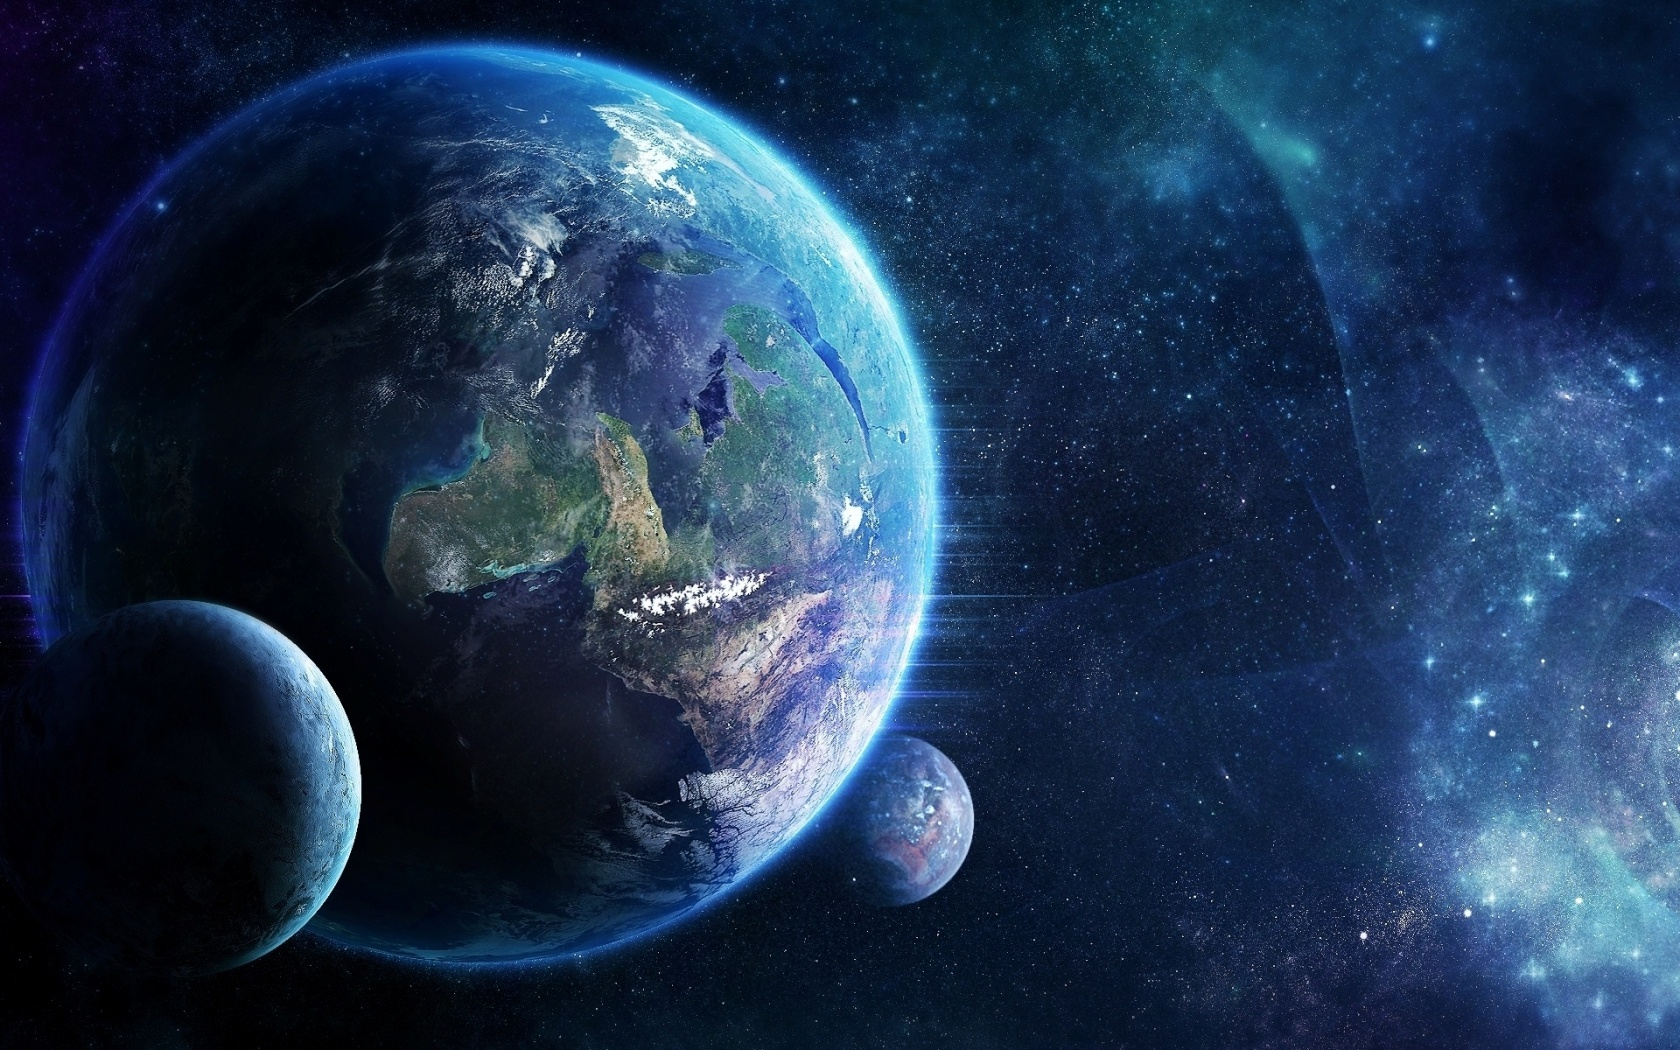 Space exploration planet wallpapers 1680x1050 729846 for Space exploration